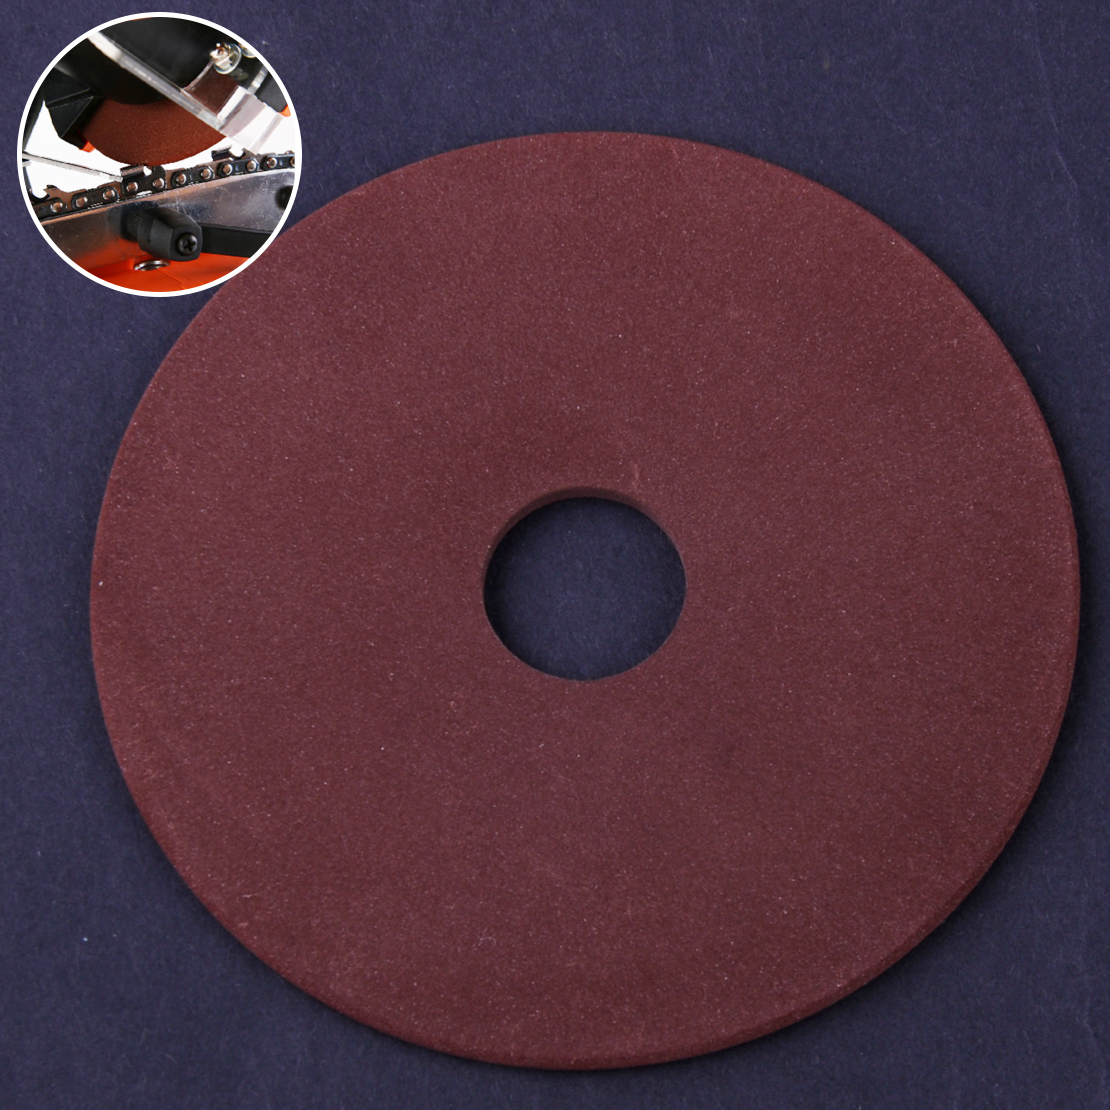 LETAOSK 105mm X 22mm Grinding Wheel Cut Off Cutter Abrasive Disc Cutting Disc For 325 Pitch 3/8